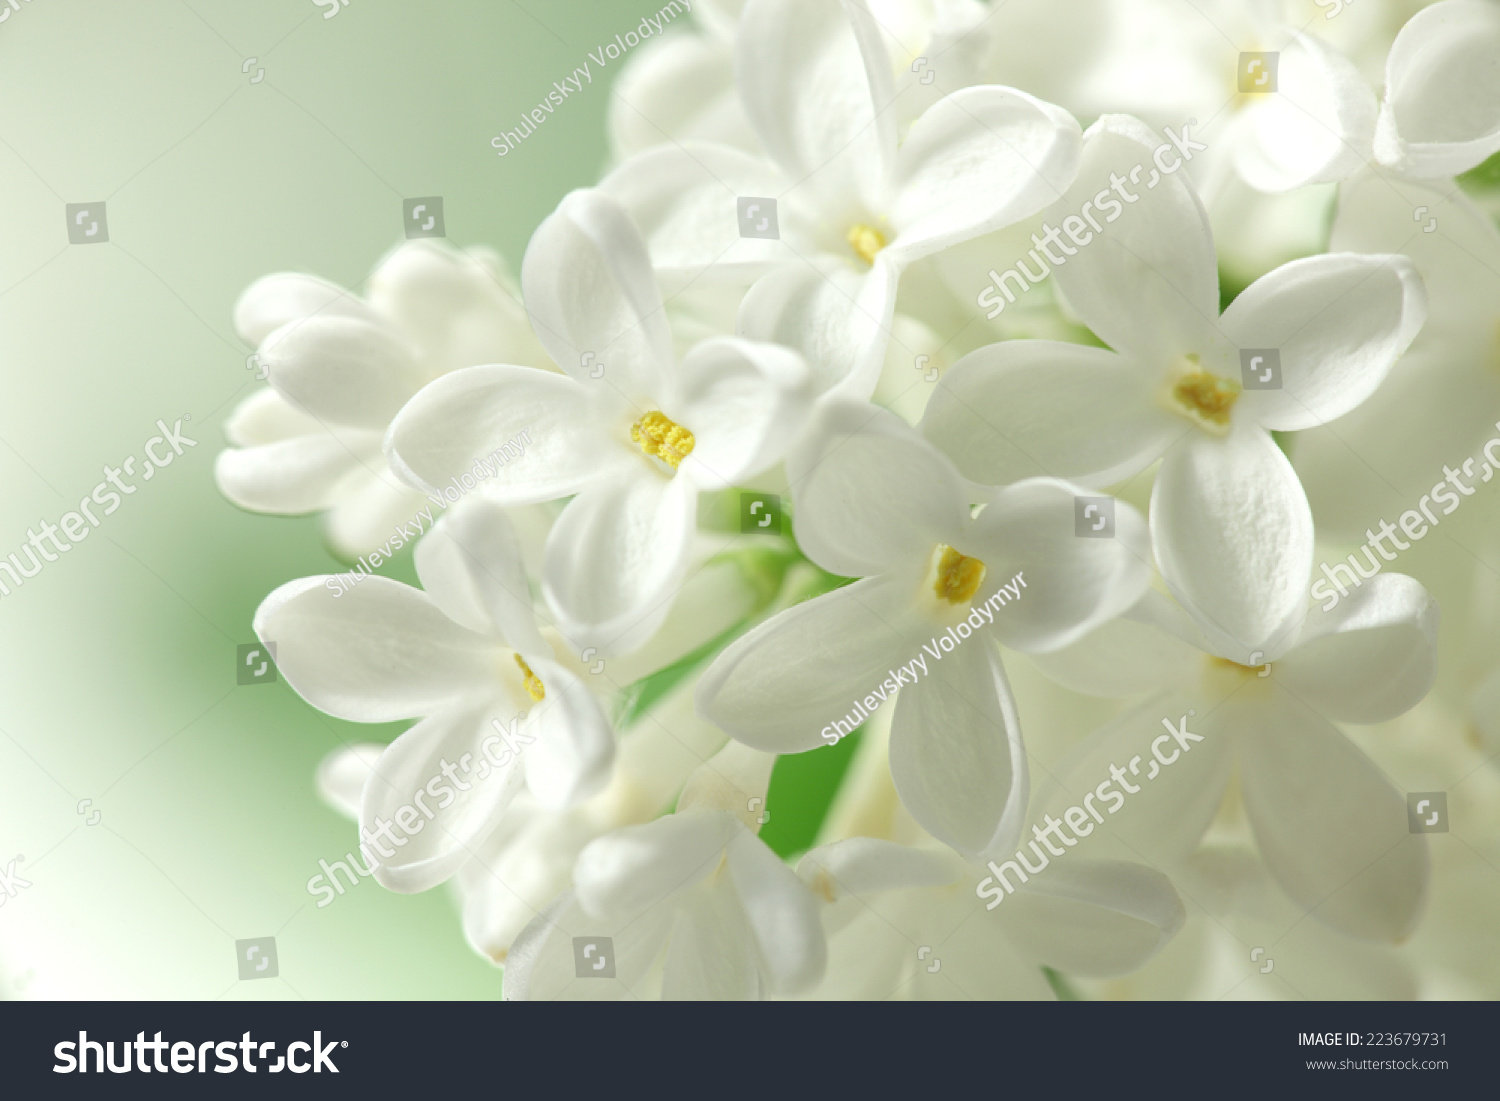 White Lilacs Flowers Background Stock Photo Edit Now 223679731